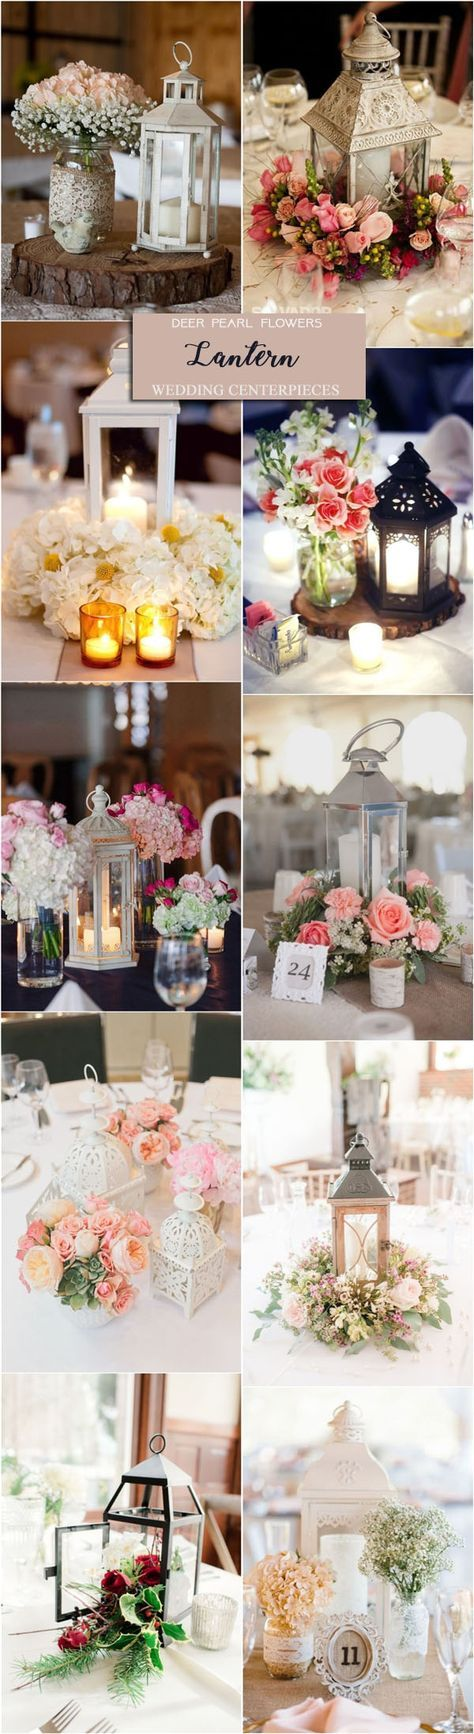 60 insanely wedding centerpiece ideas youll love casamento 60 insanely wedding centerpiece ideas youll love junglespirit Image collections